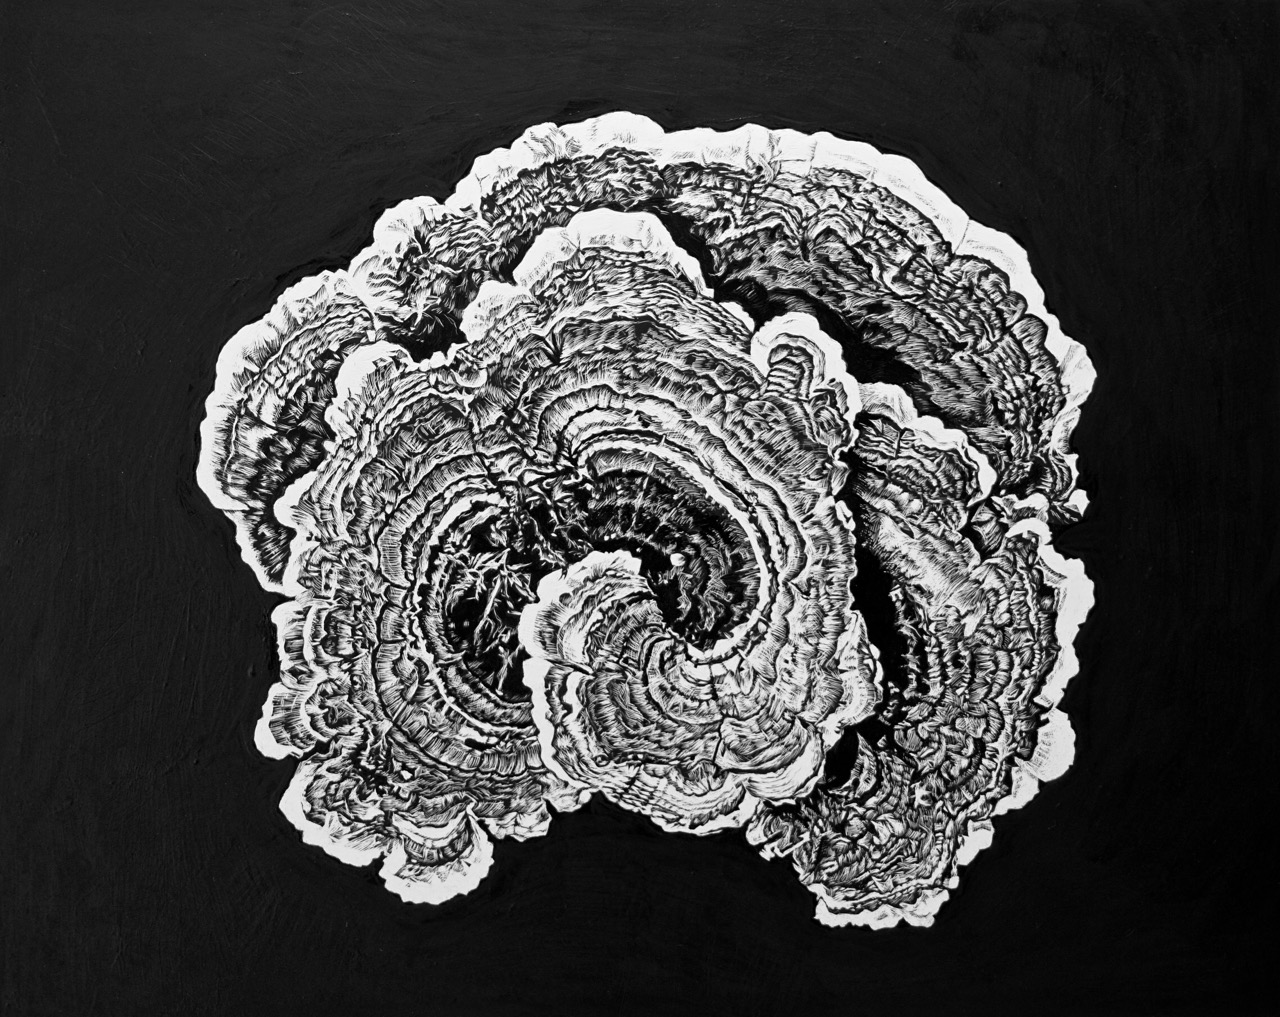 A turkey tail fungus is shown in great detail against a pitch black backdrop. Lines of the fungus, as intricate as lace, are coiled into a black and white natural form.